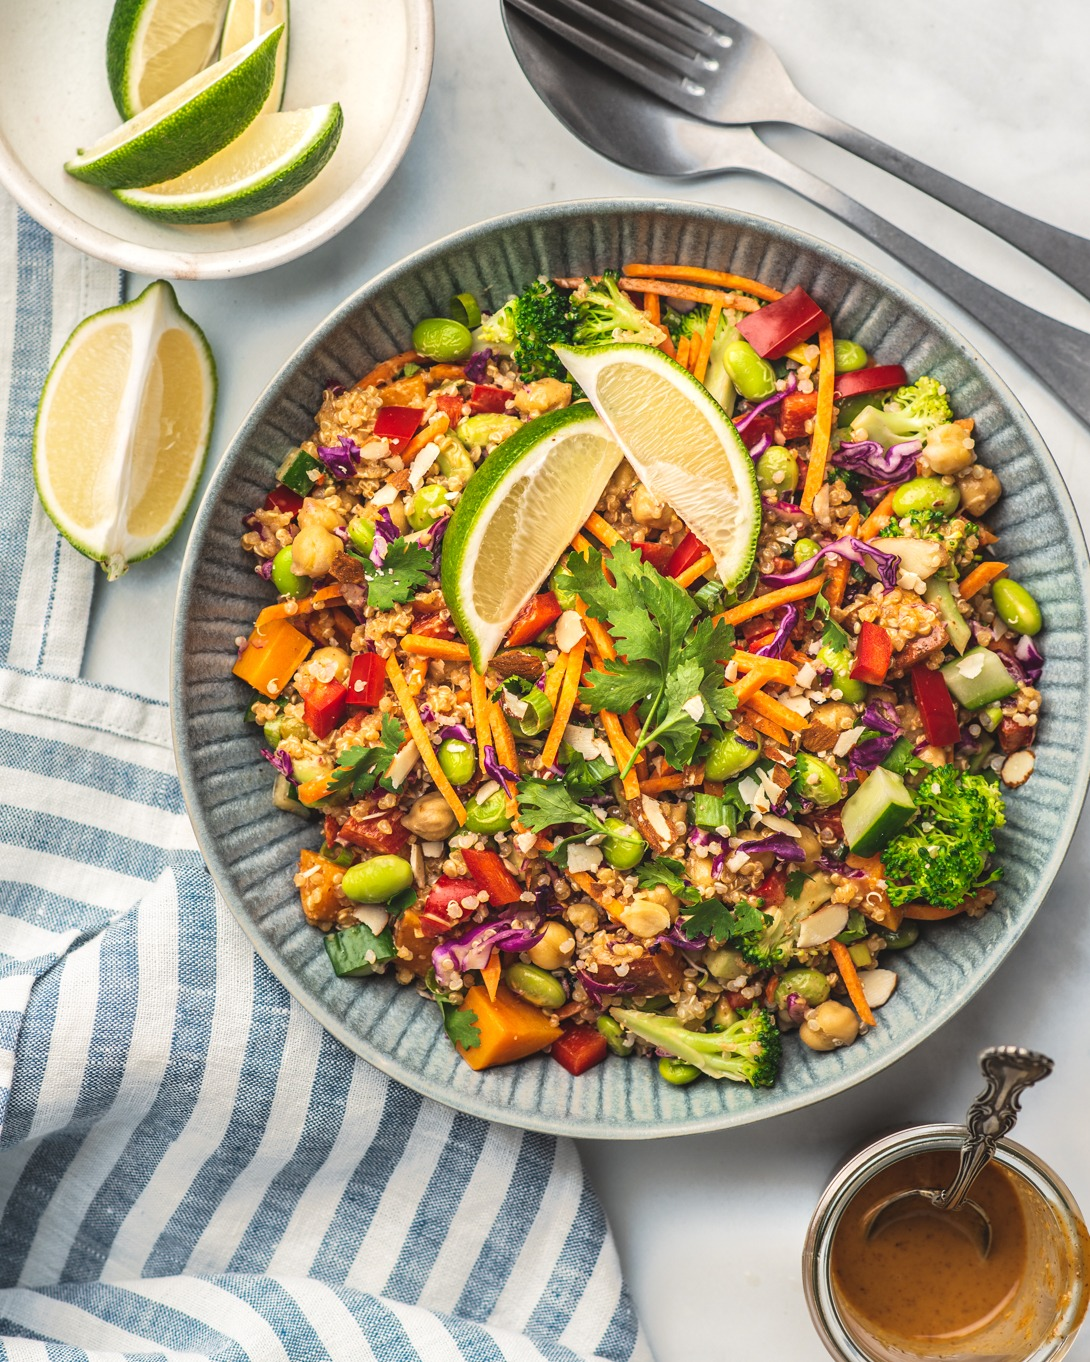 Pad Thai Protein Salad recipe from The Plant-Based Cookbook + Book Review and Giveaway!